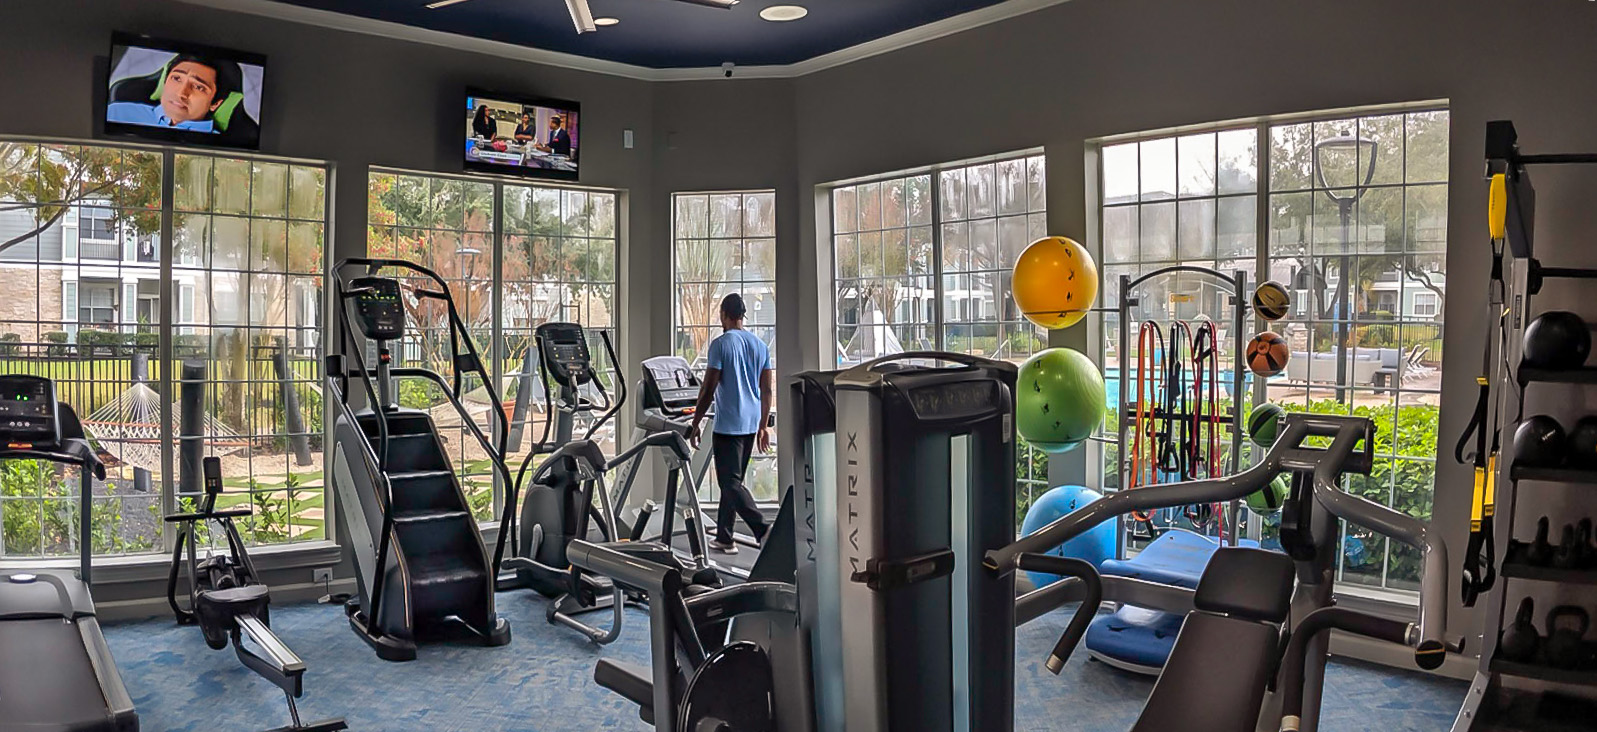 State-of-the-Art Fitness Center at The Link, a Community of Luxury Apartments in Houston, Texas